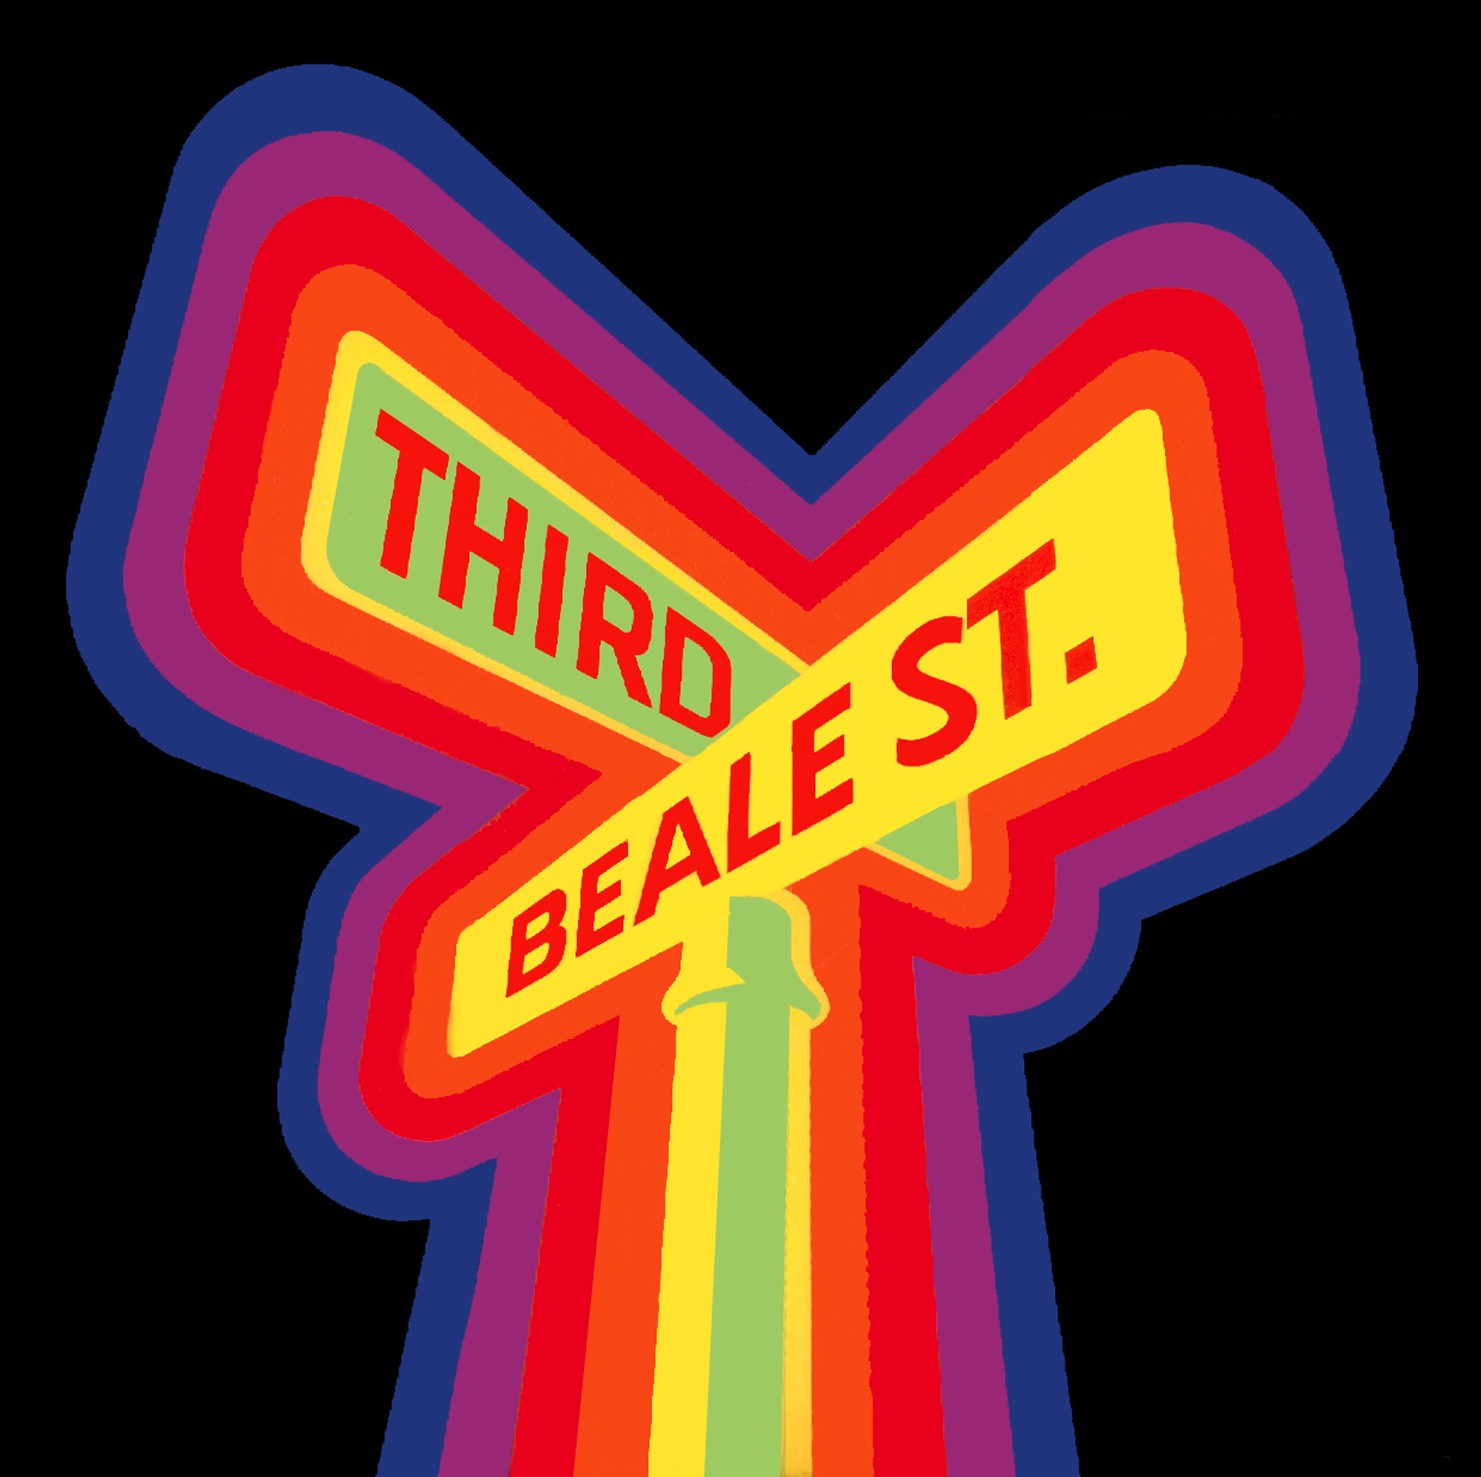 Caption: Our distinctive logo comes from a rare poster for the 1977 Beale Street Music Festival. Collection of the producer.